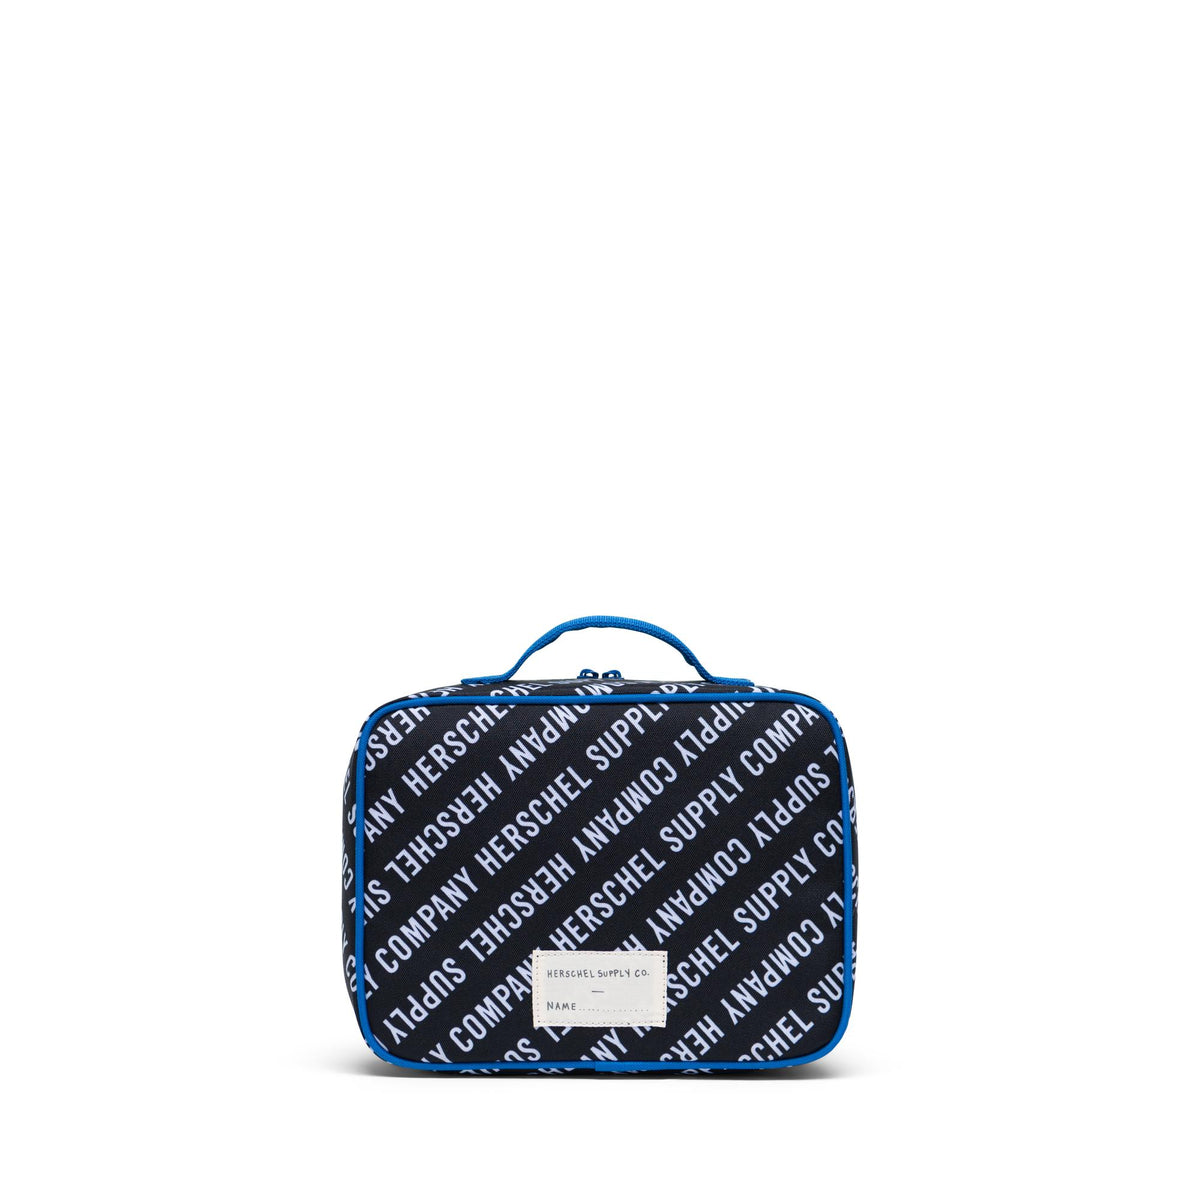 Pop Quiz Lunch Box - Roll Call Black, White & Lapis Blue